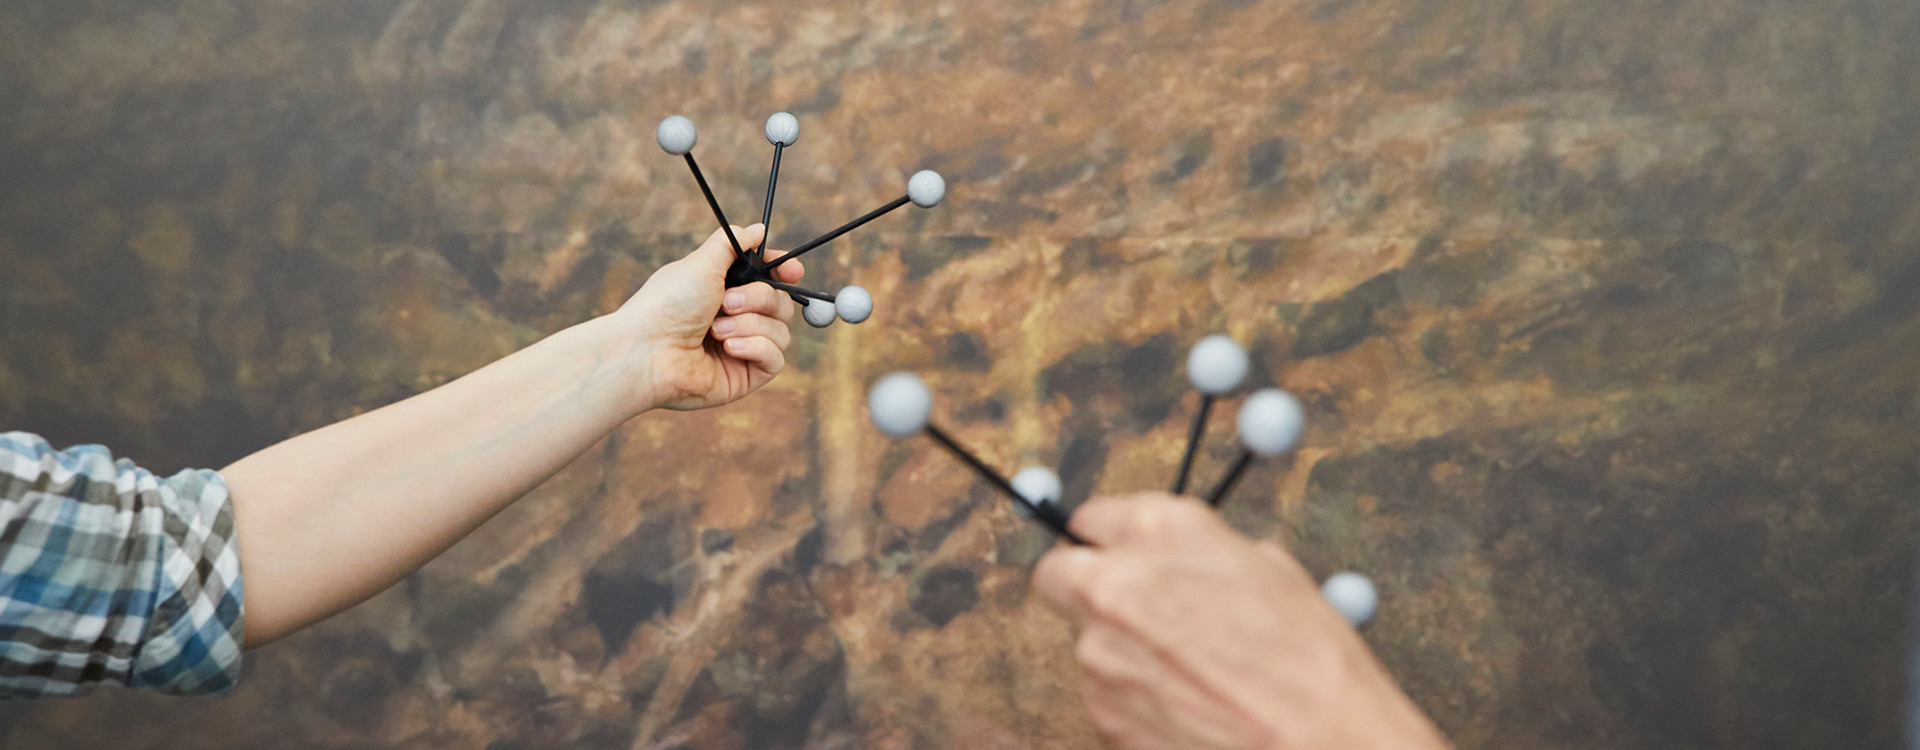 Molecule models are held up by two hands